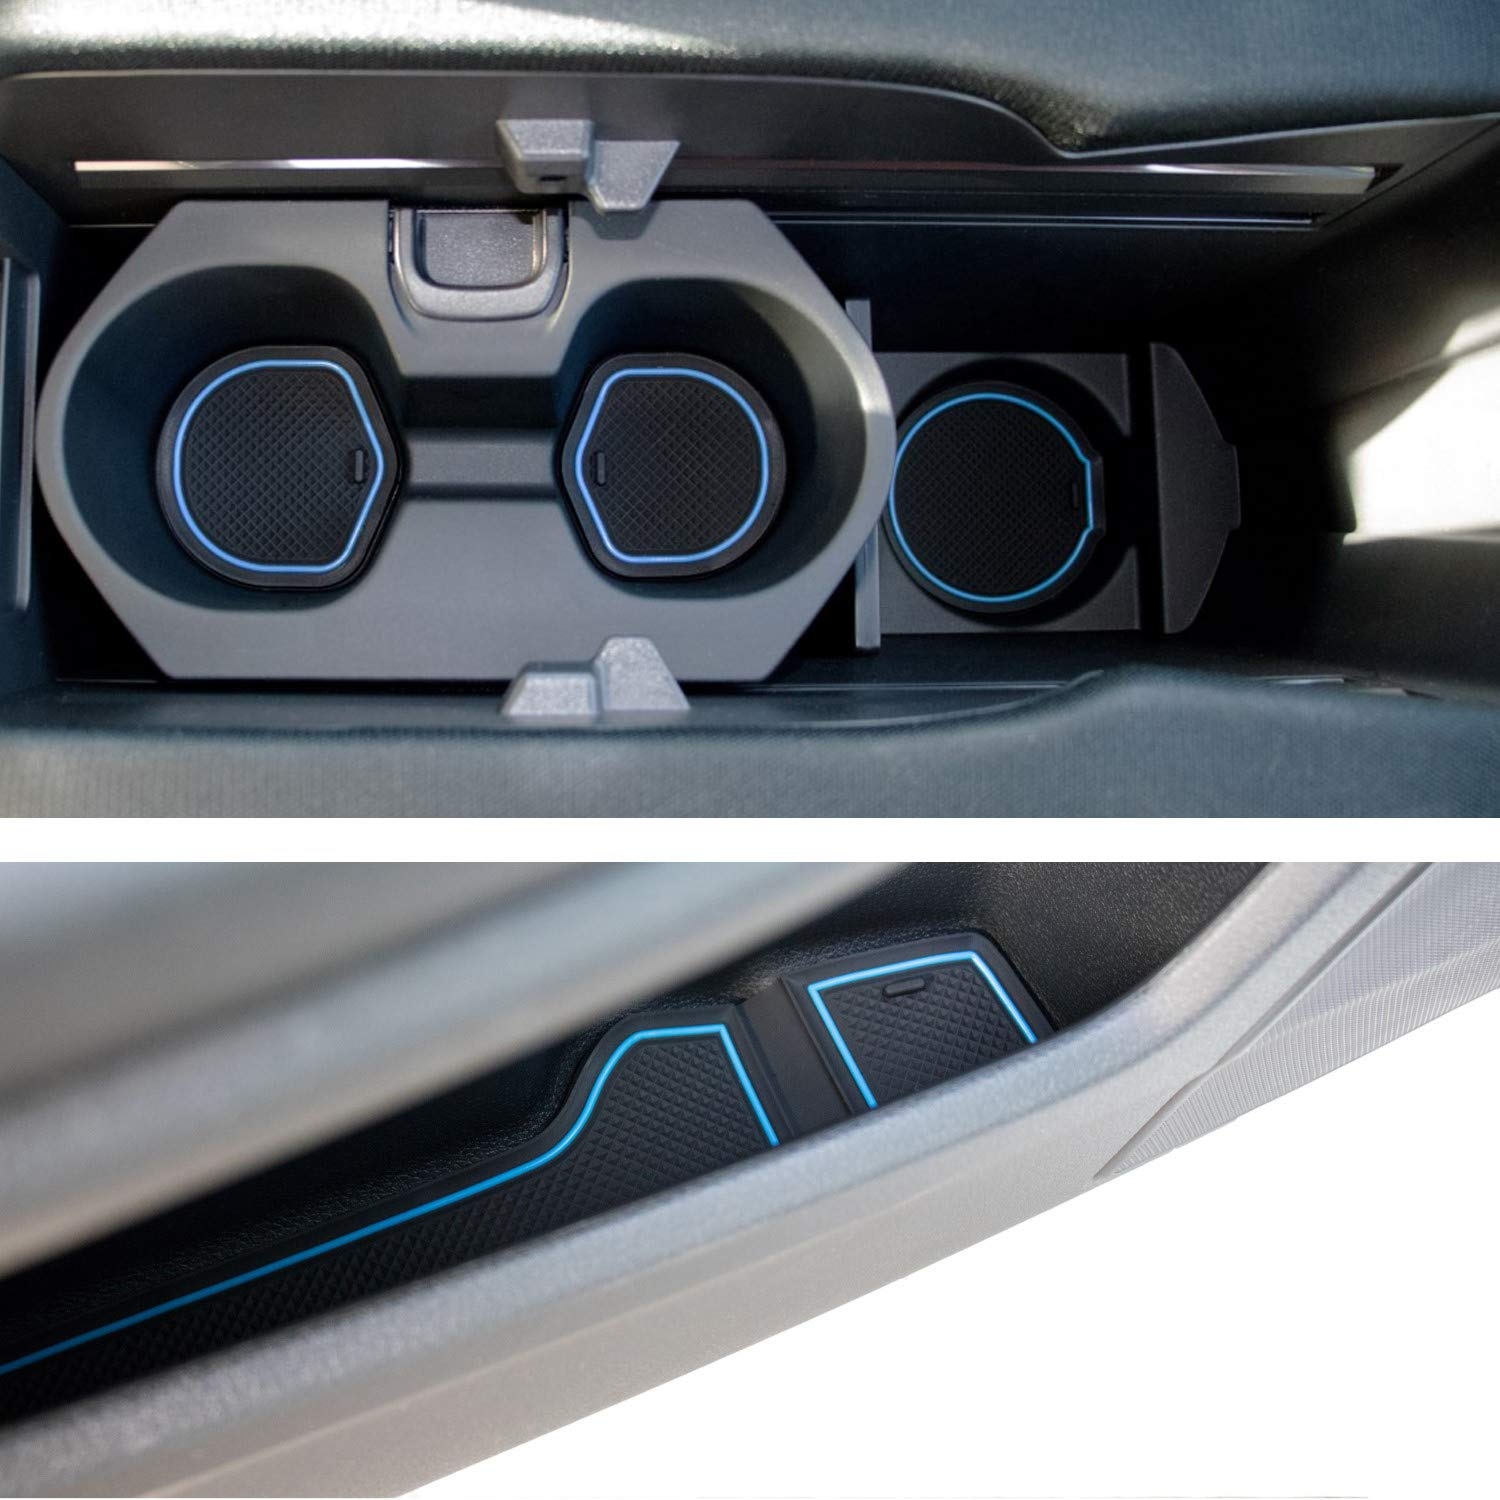 Custom Fit Cup, Door and Center Console Liner Accessories for Honda Civic 2019 2018 2017 2016 14-pc Set (Front Seat, Blue Trim)